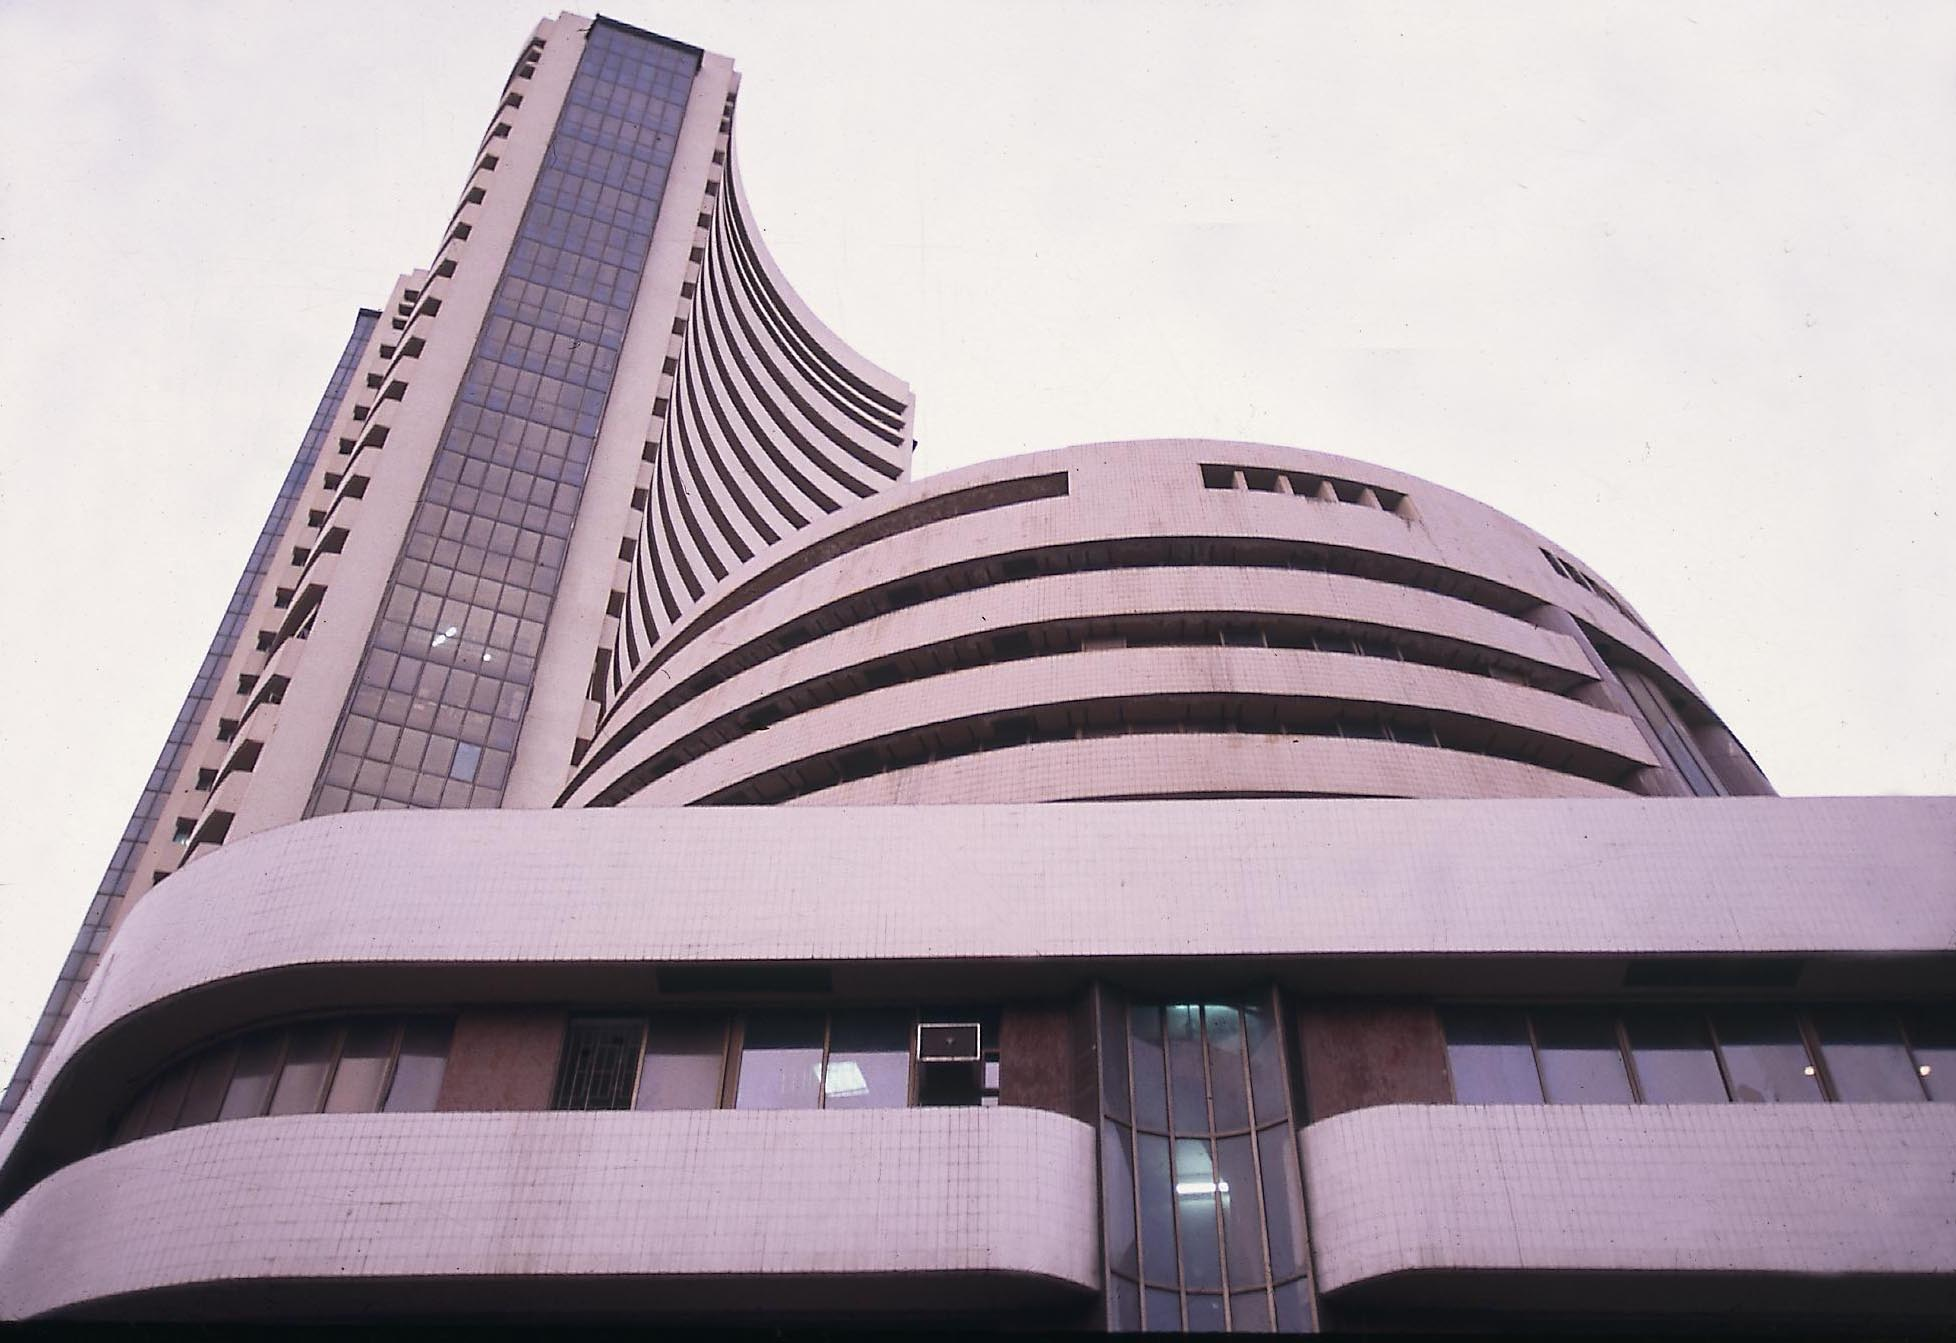 The 30-share BSE Sensex surged over 640 points in early trade mirroring bullish sentiments in global markets in the wake of surprisingly strong US jobs data, but an intense volatility gripped the index as the session progressed.